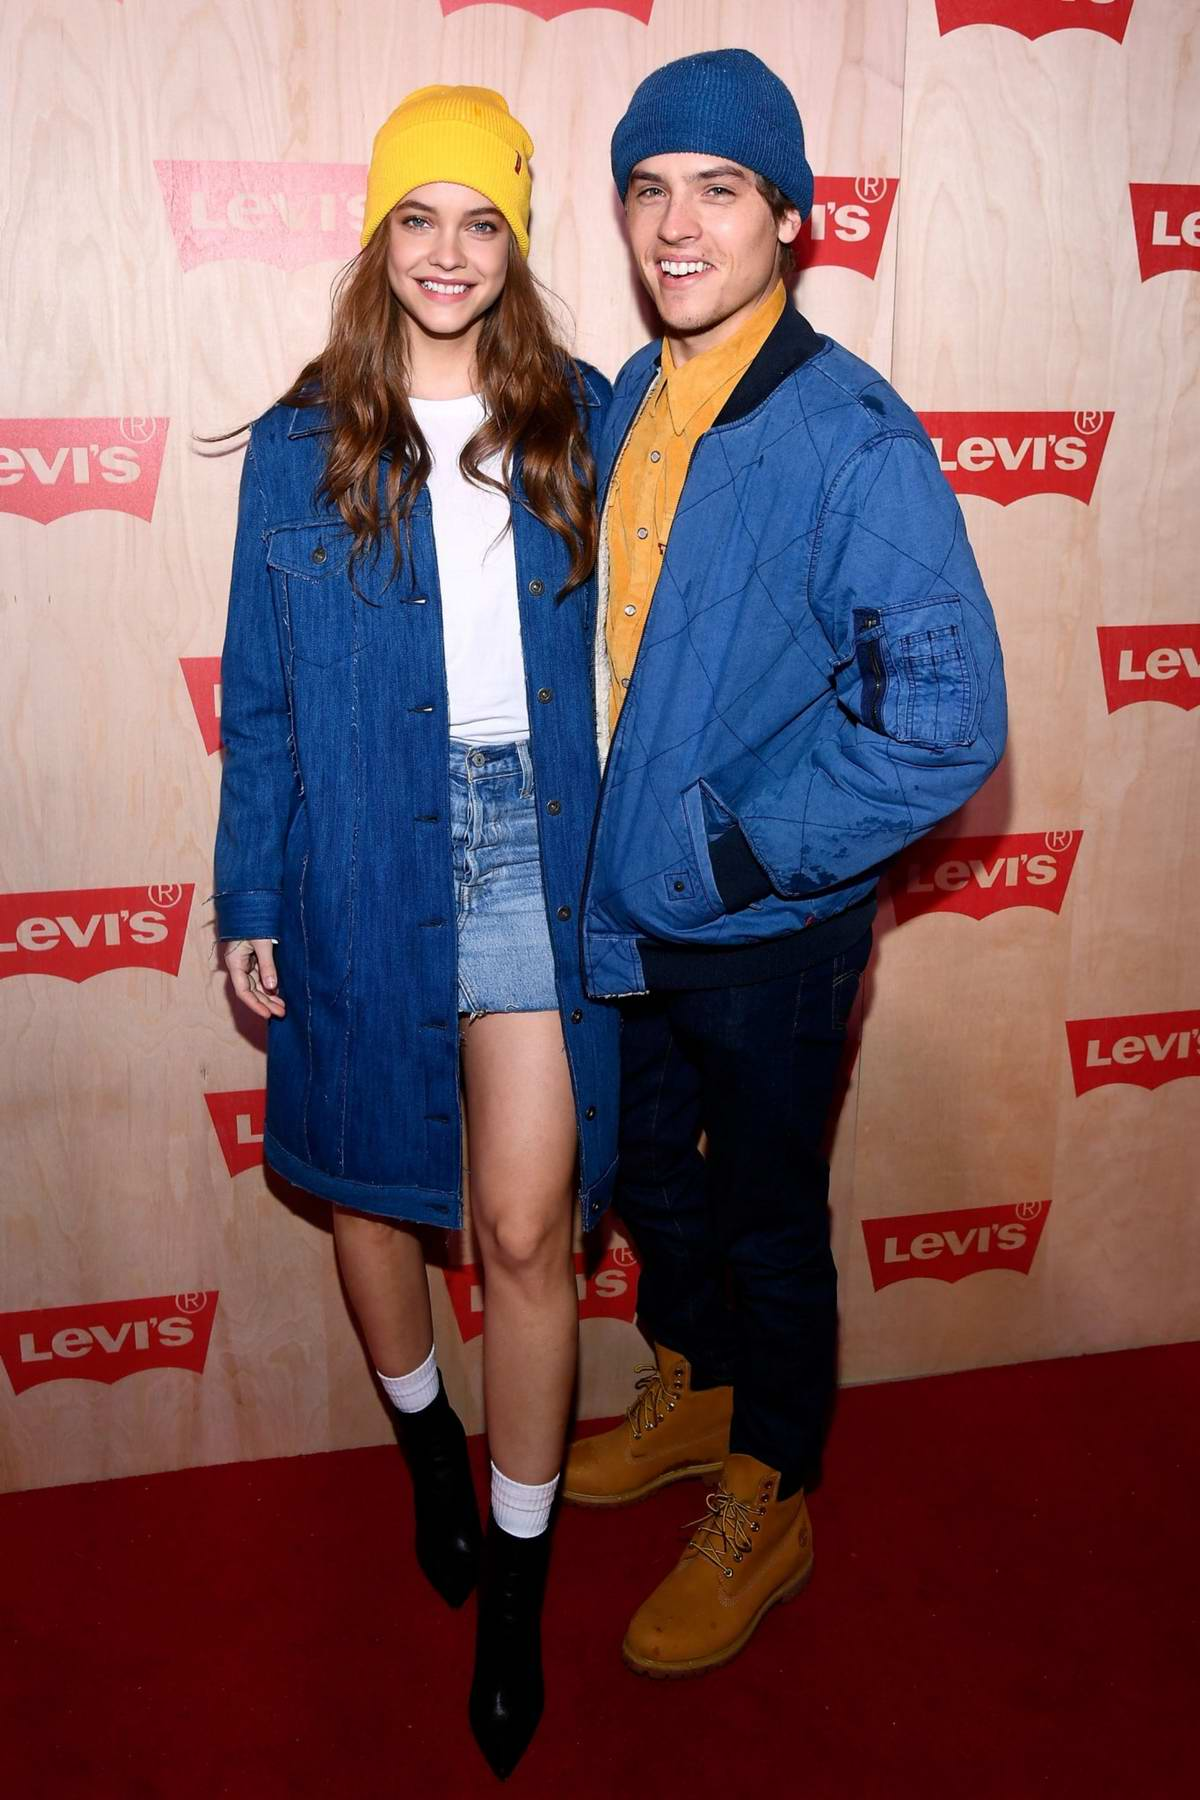 Barbara Palvin and Dylan Sprouse at the Levi's Times Square Store Opening in New York City